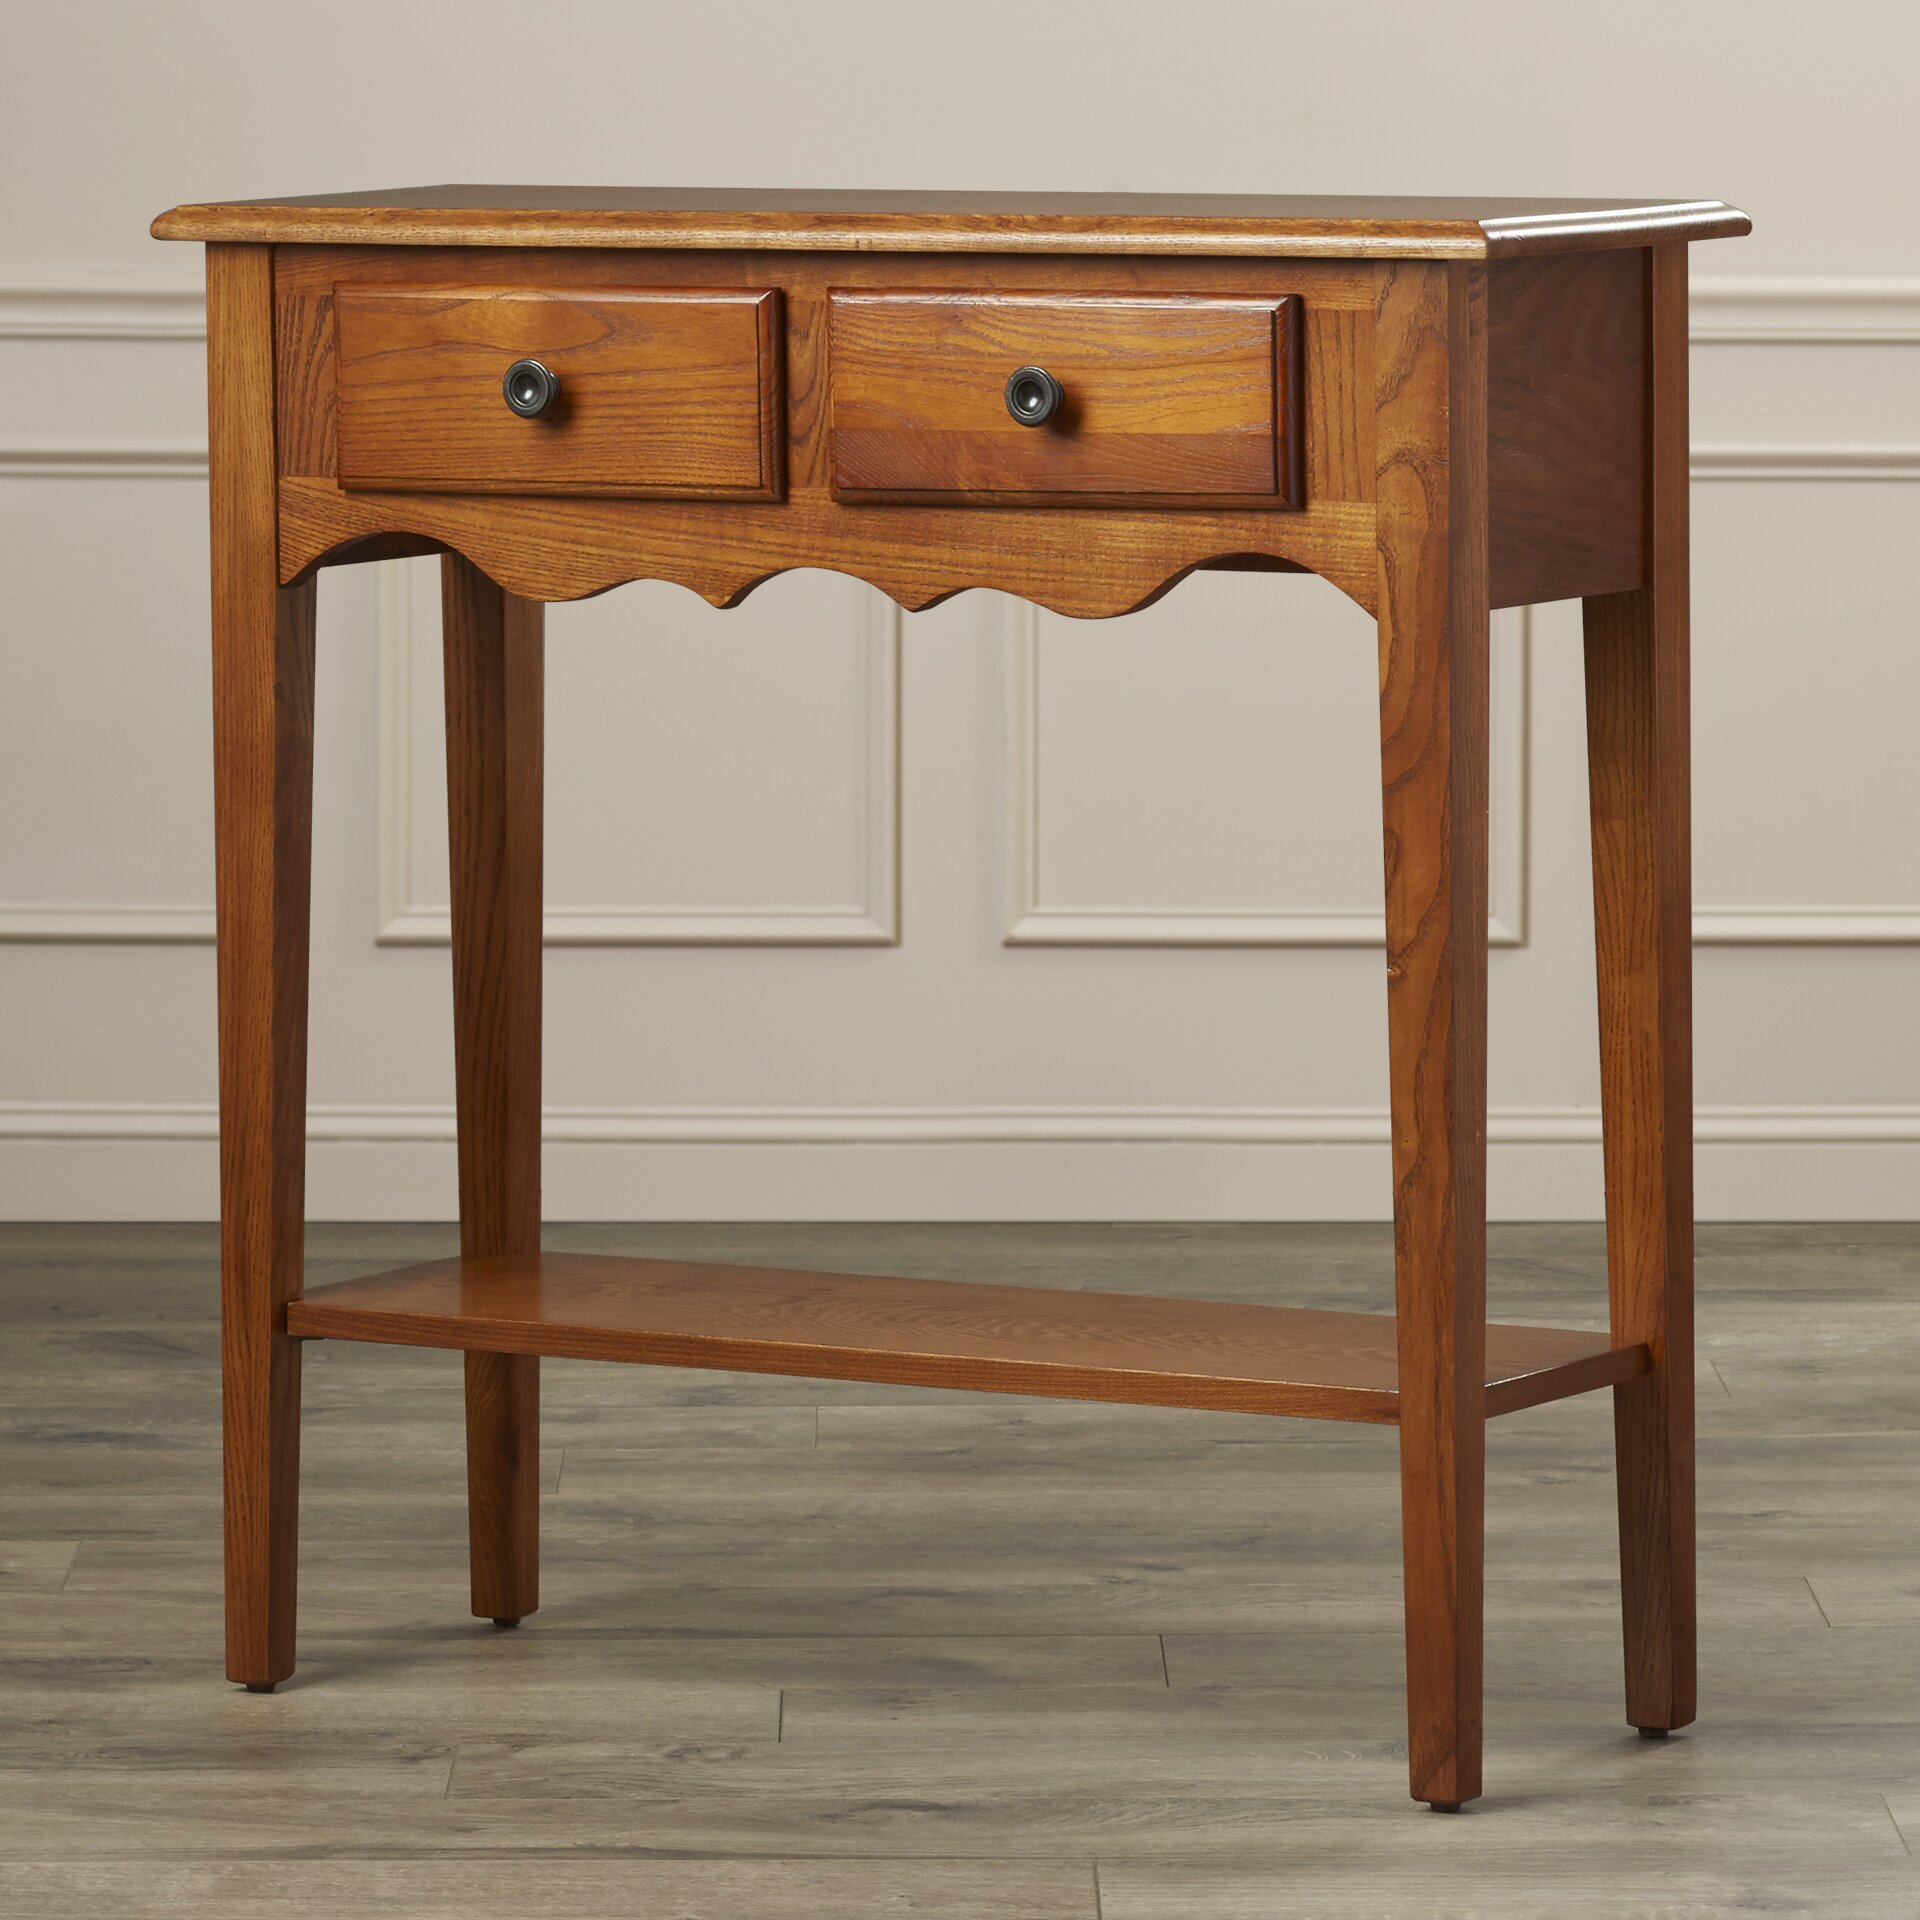 Apple Valley Kitchen Cabinets Charlton Home Apple Valley Petite Console Table Reviews Wayfair